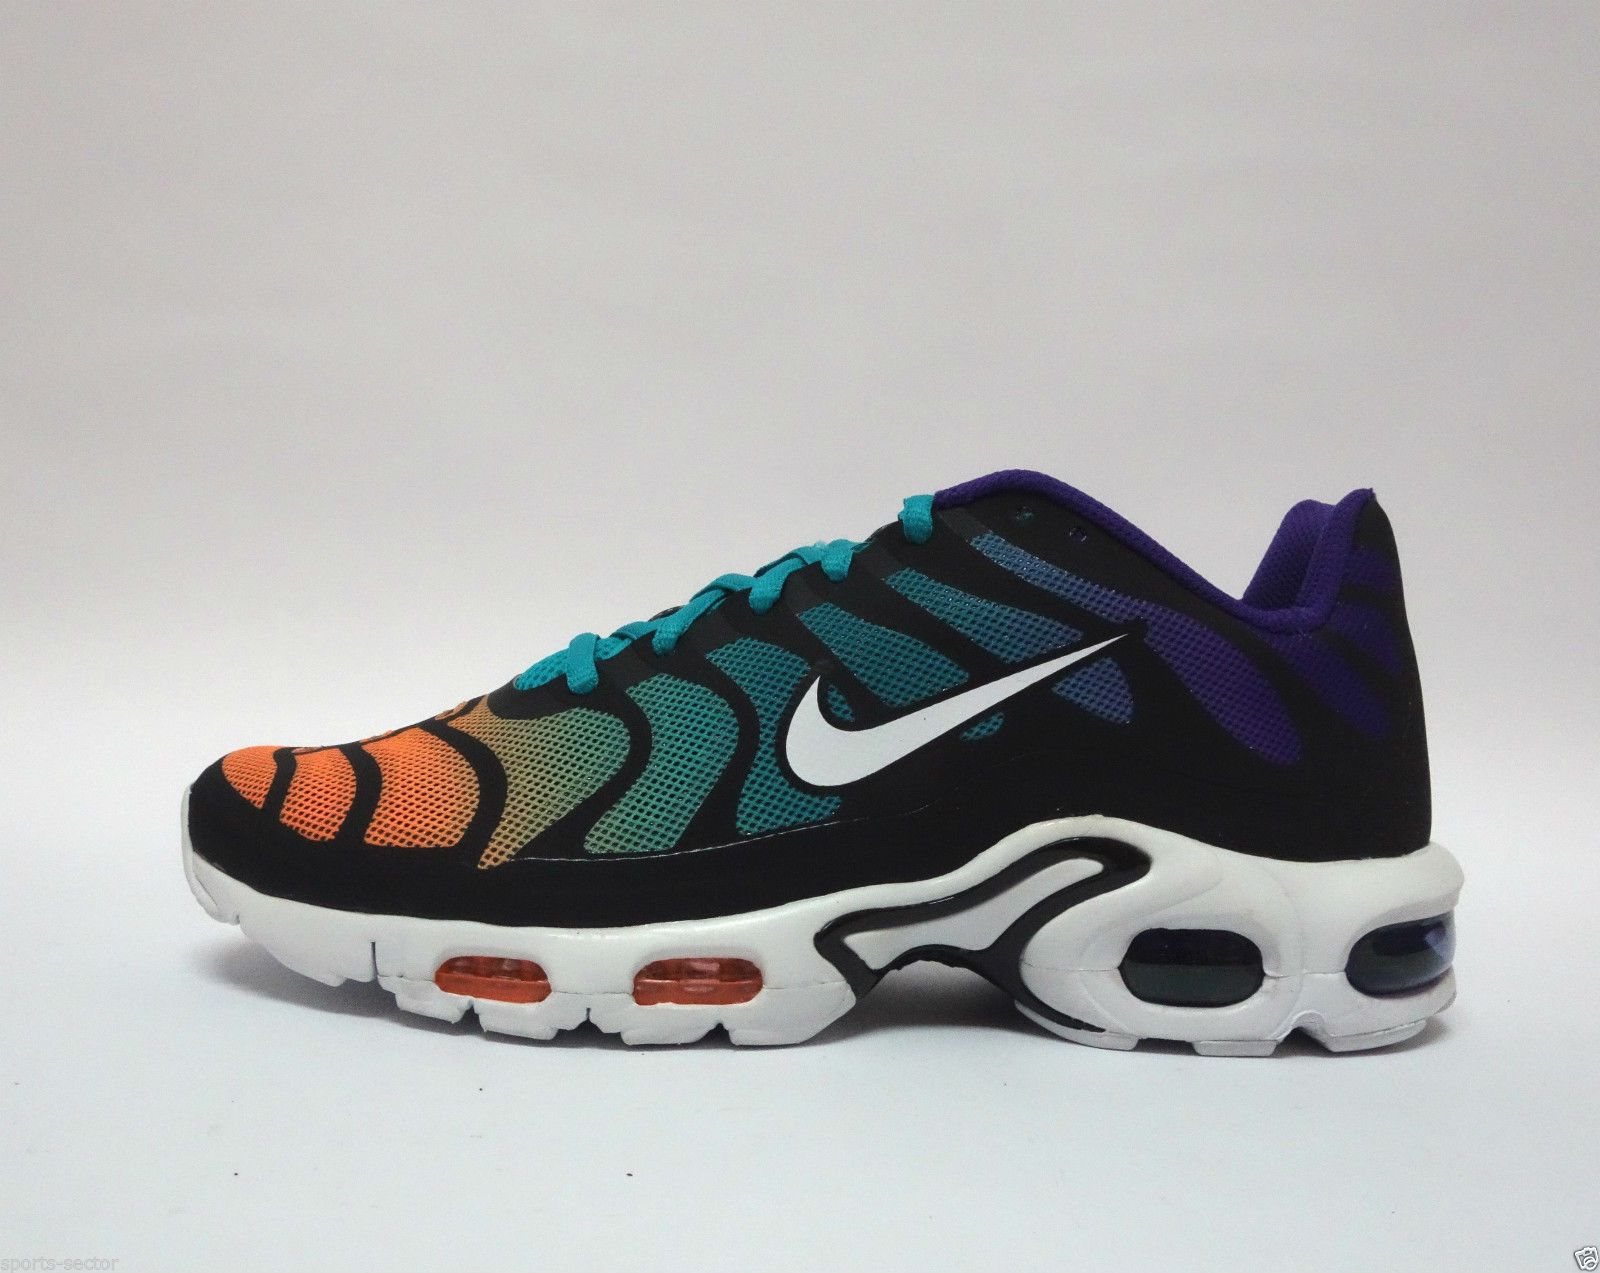 buy popular 5bb45 6efb4 Nike Air Max Plus Hyperfuse TN1 Tuned Mens Trainers Shoes Turbo Green White    eBay